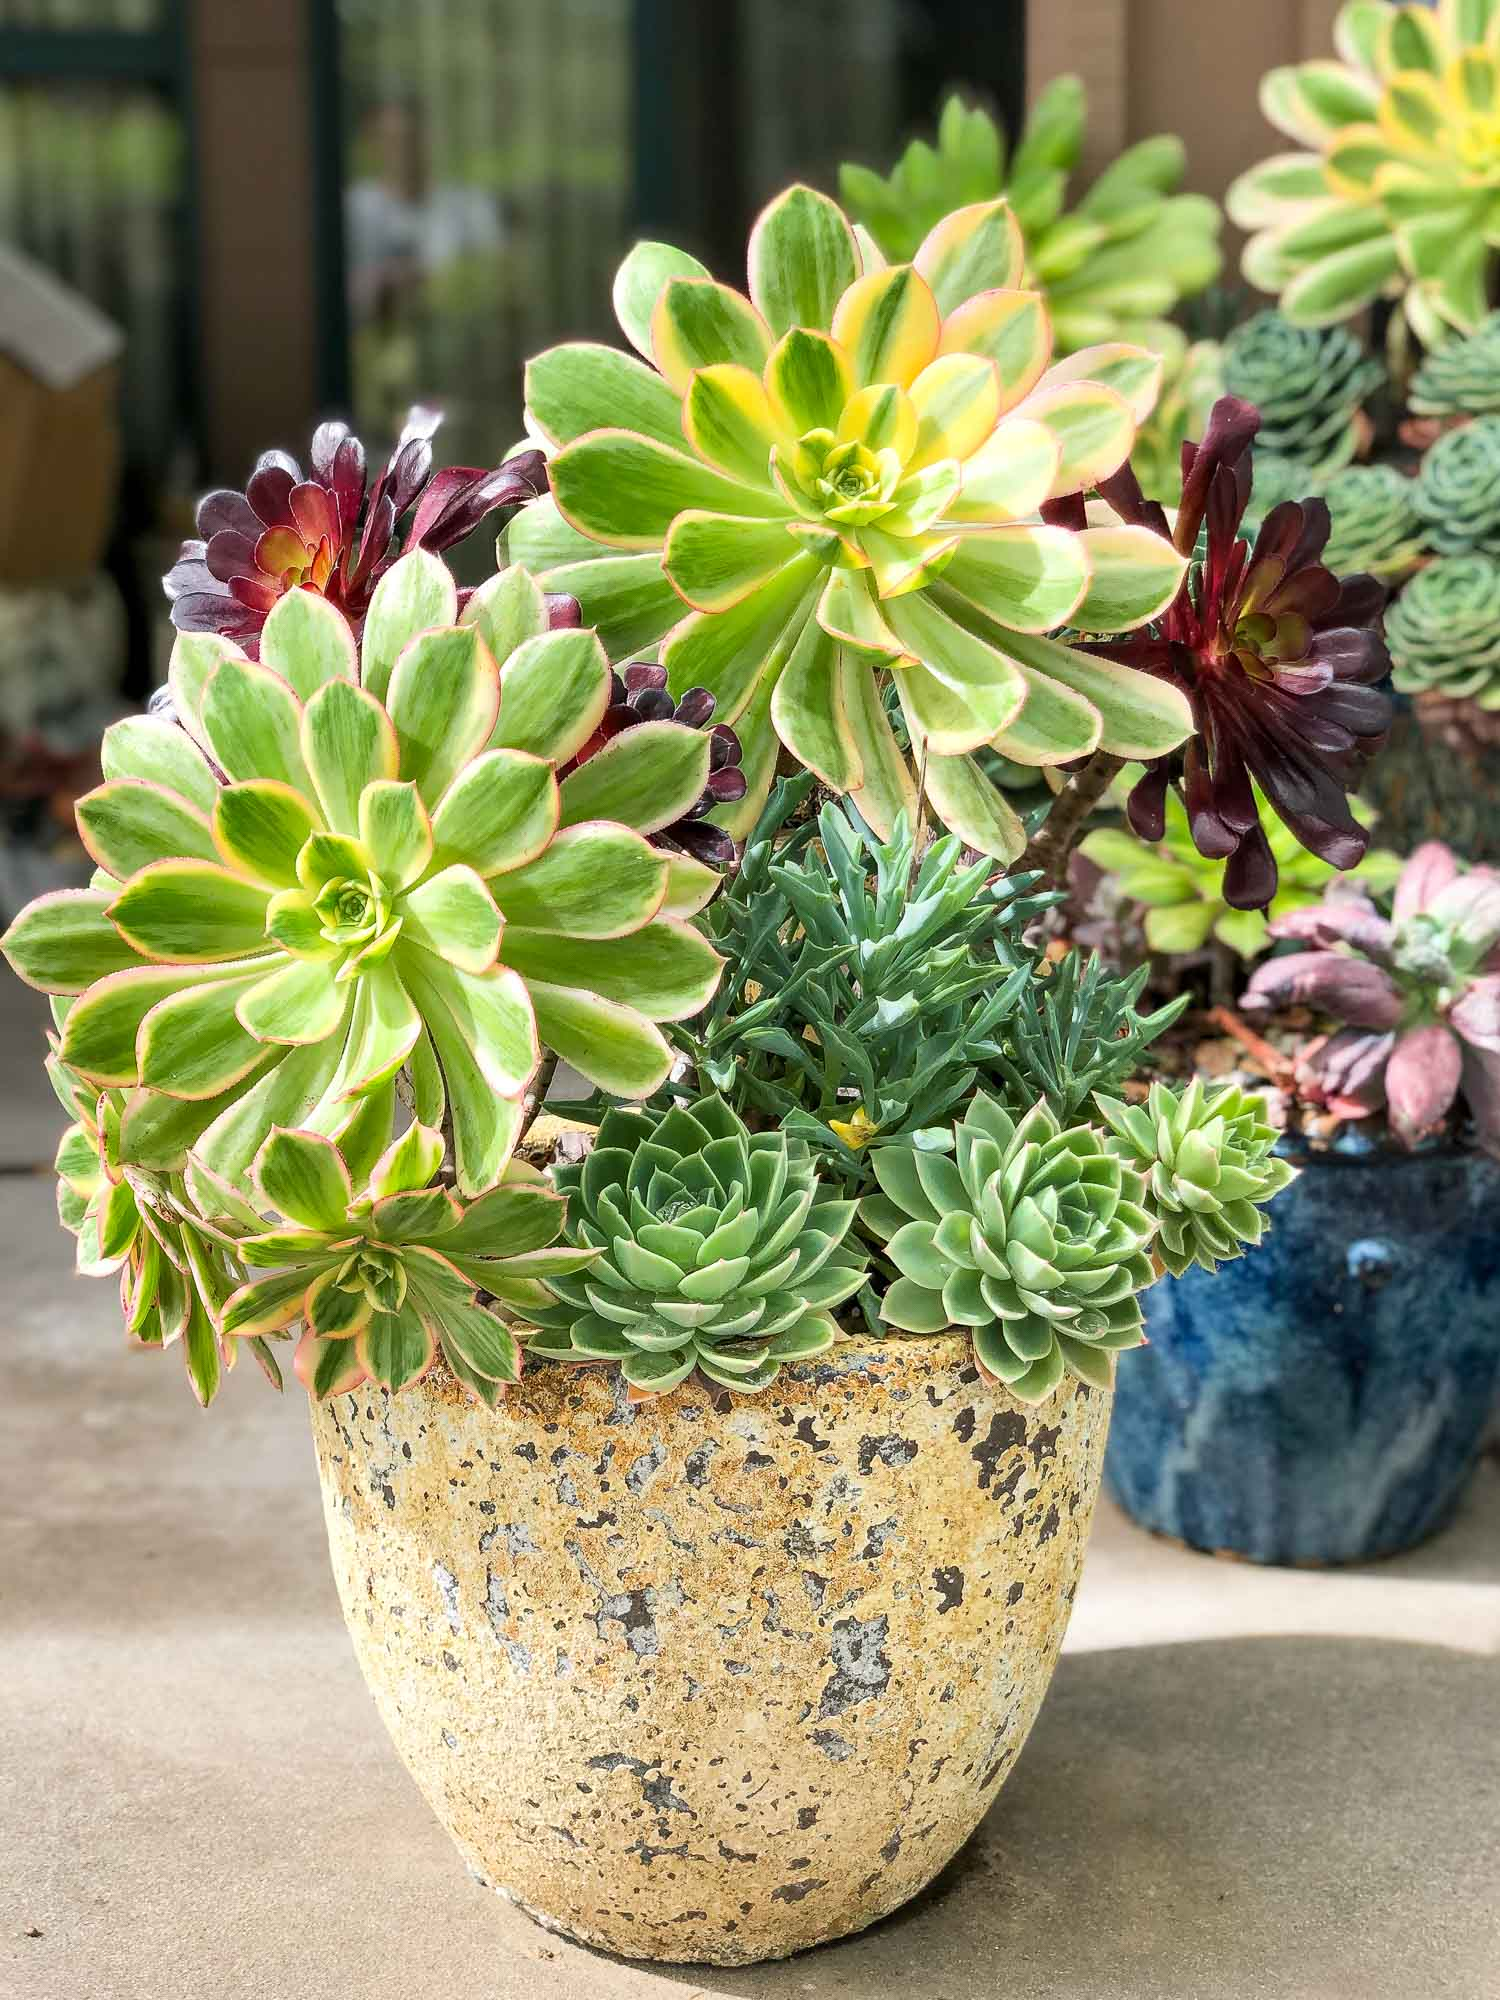 How To Care For Aeoniums Lemons Anchovies